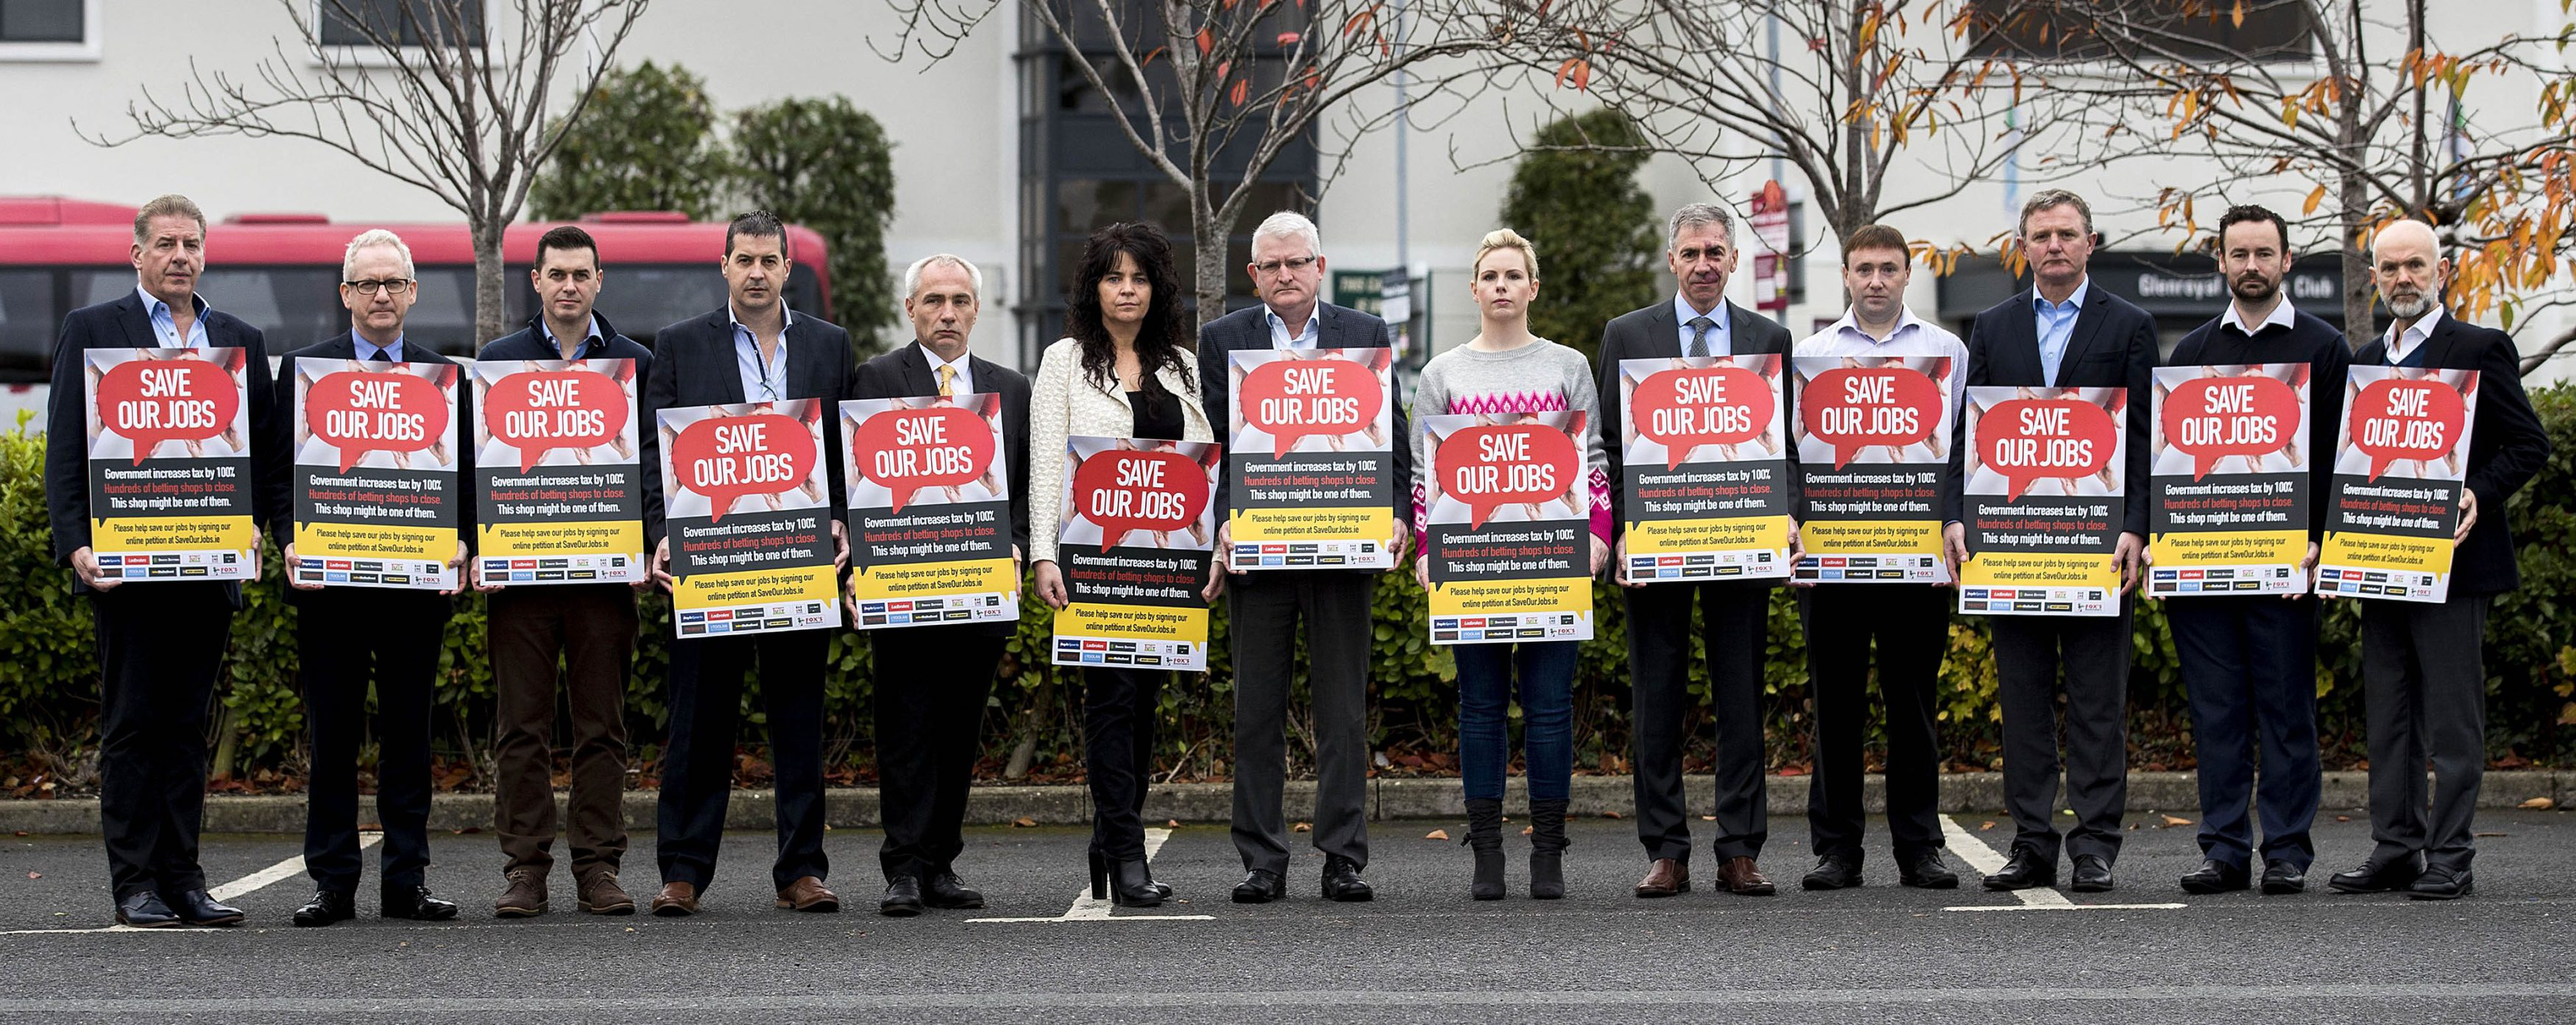 "EDITORIAL USE ONLY Irish bookmakers at the launch of the ""Save Our Jobs"" campaign that is aimed at preventing the loss of up to 2,000 jobs, which are threatened by plans to increase Betting Duty by 100 per cent. PRESS ASSOCIATION Photo. Picture date: Friday October 19, 2018. Photo credit should read: Liam McBurney/PA Wire"